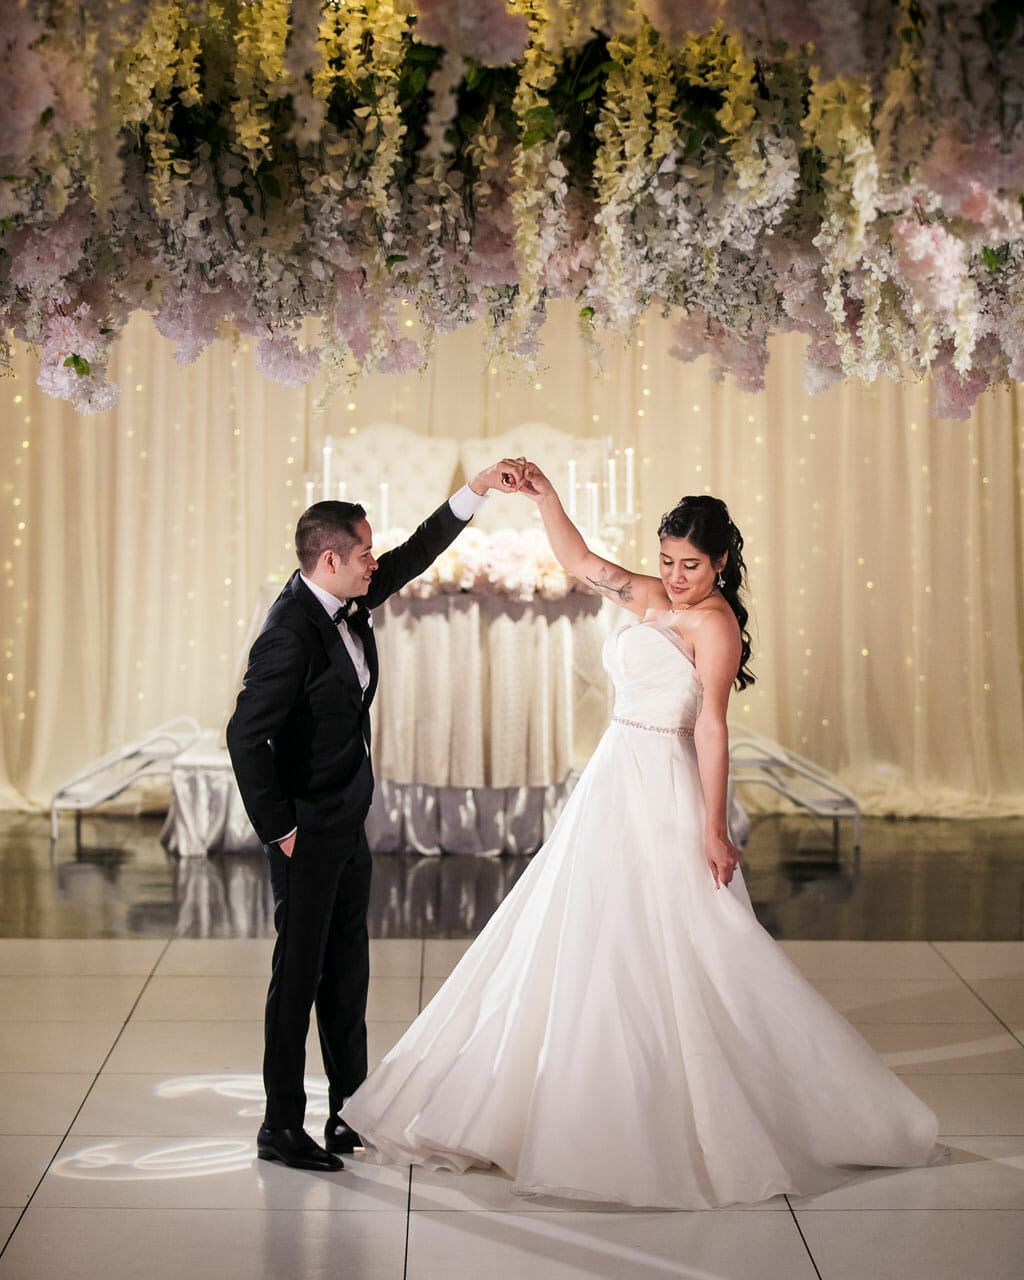 first dance under a canopy of flowers from a wedding at noor banquet hall in los angeles